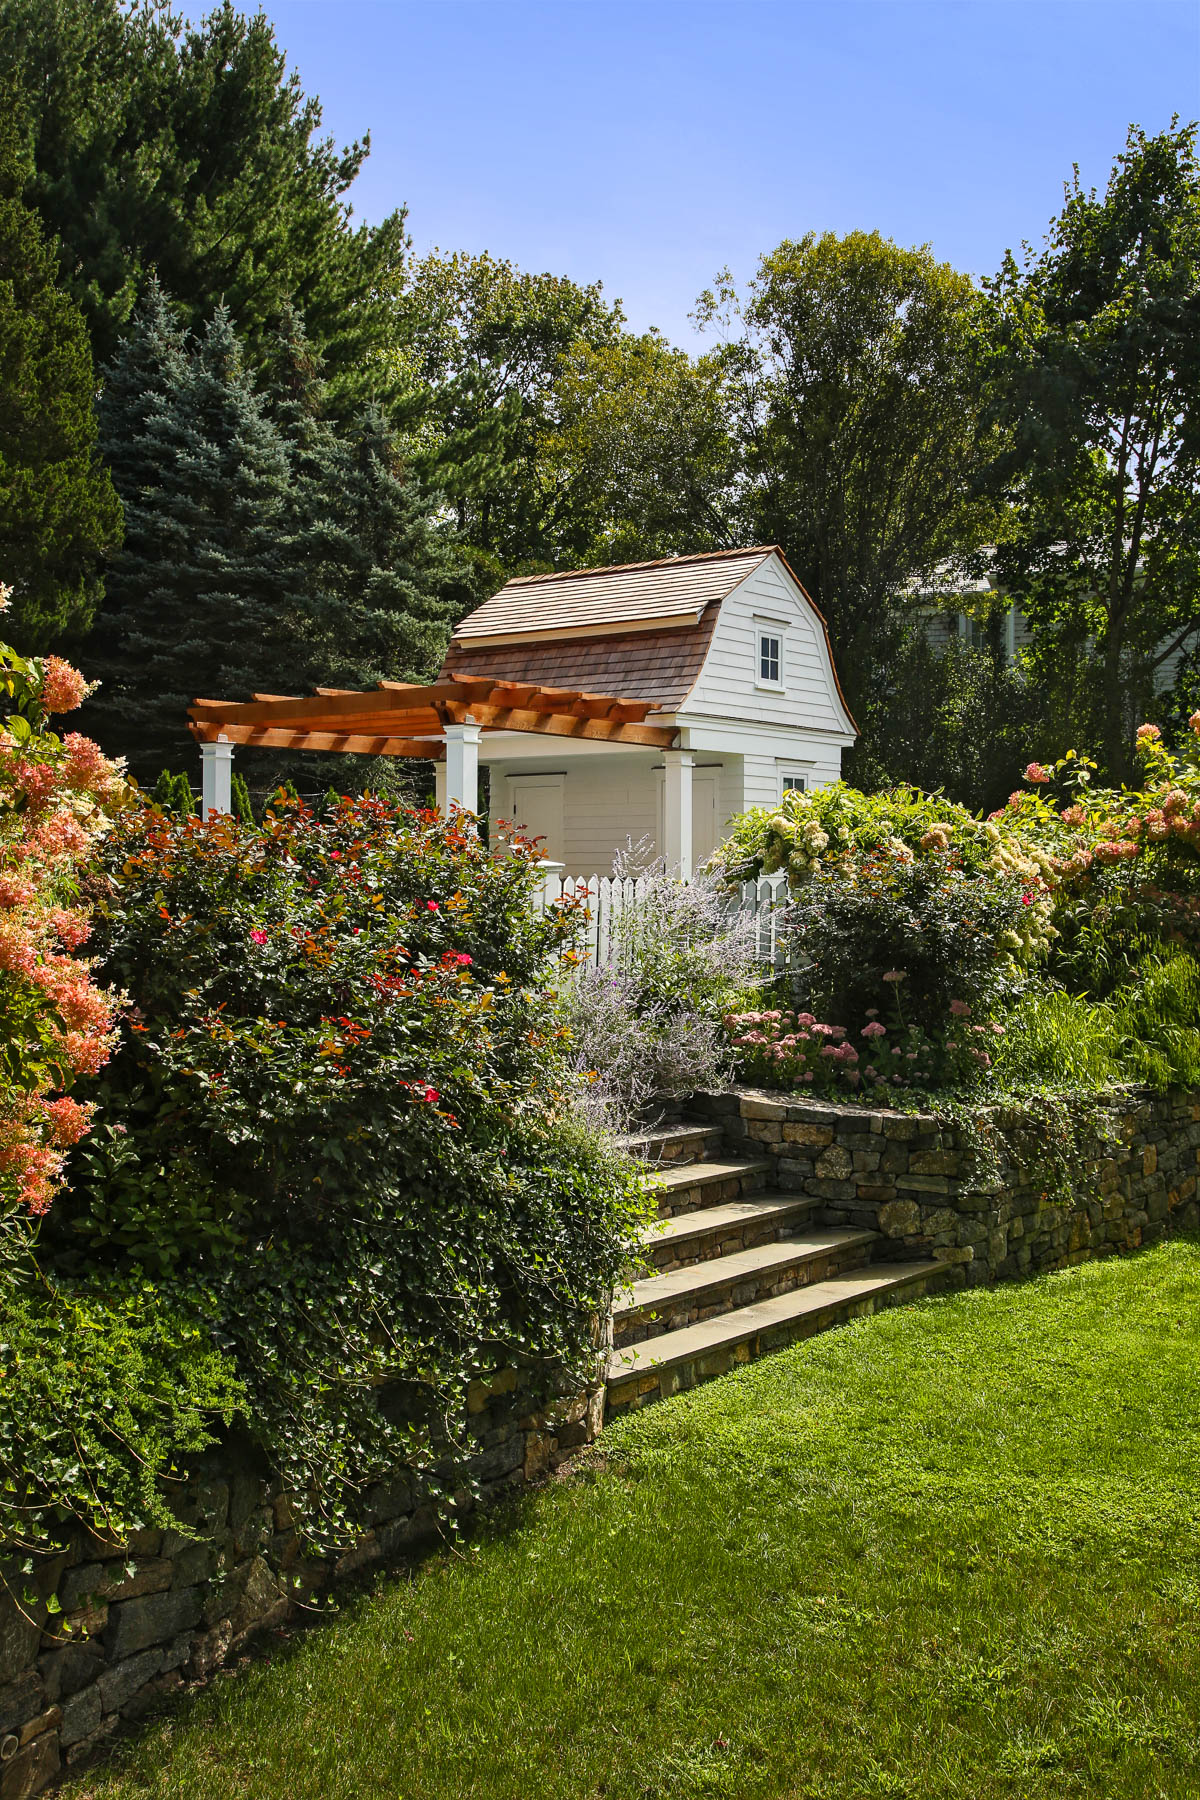 2-Side View with Garden.jpg